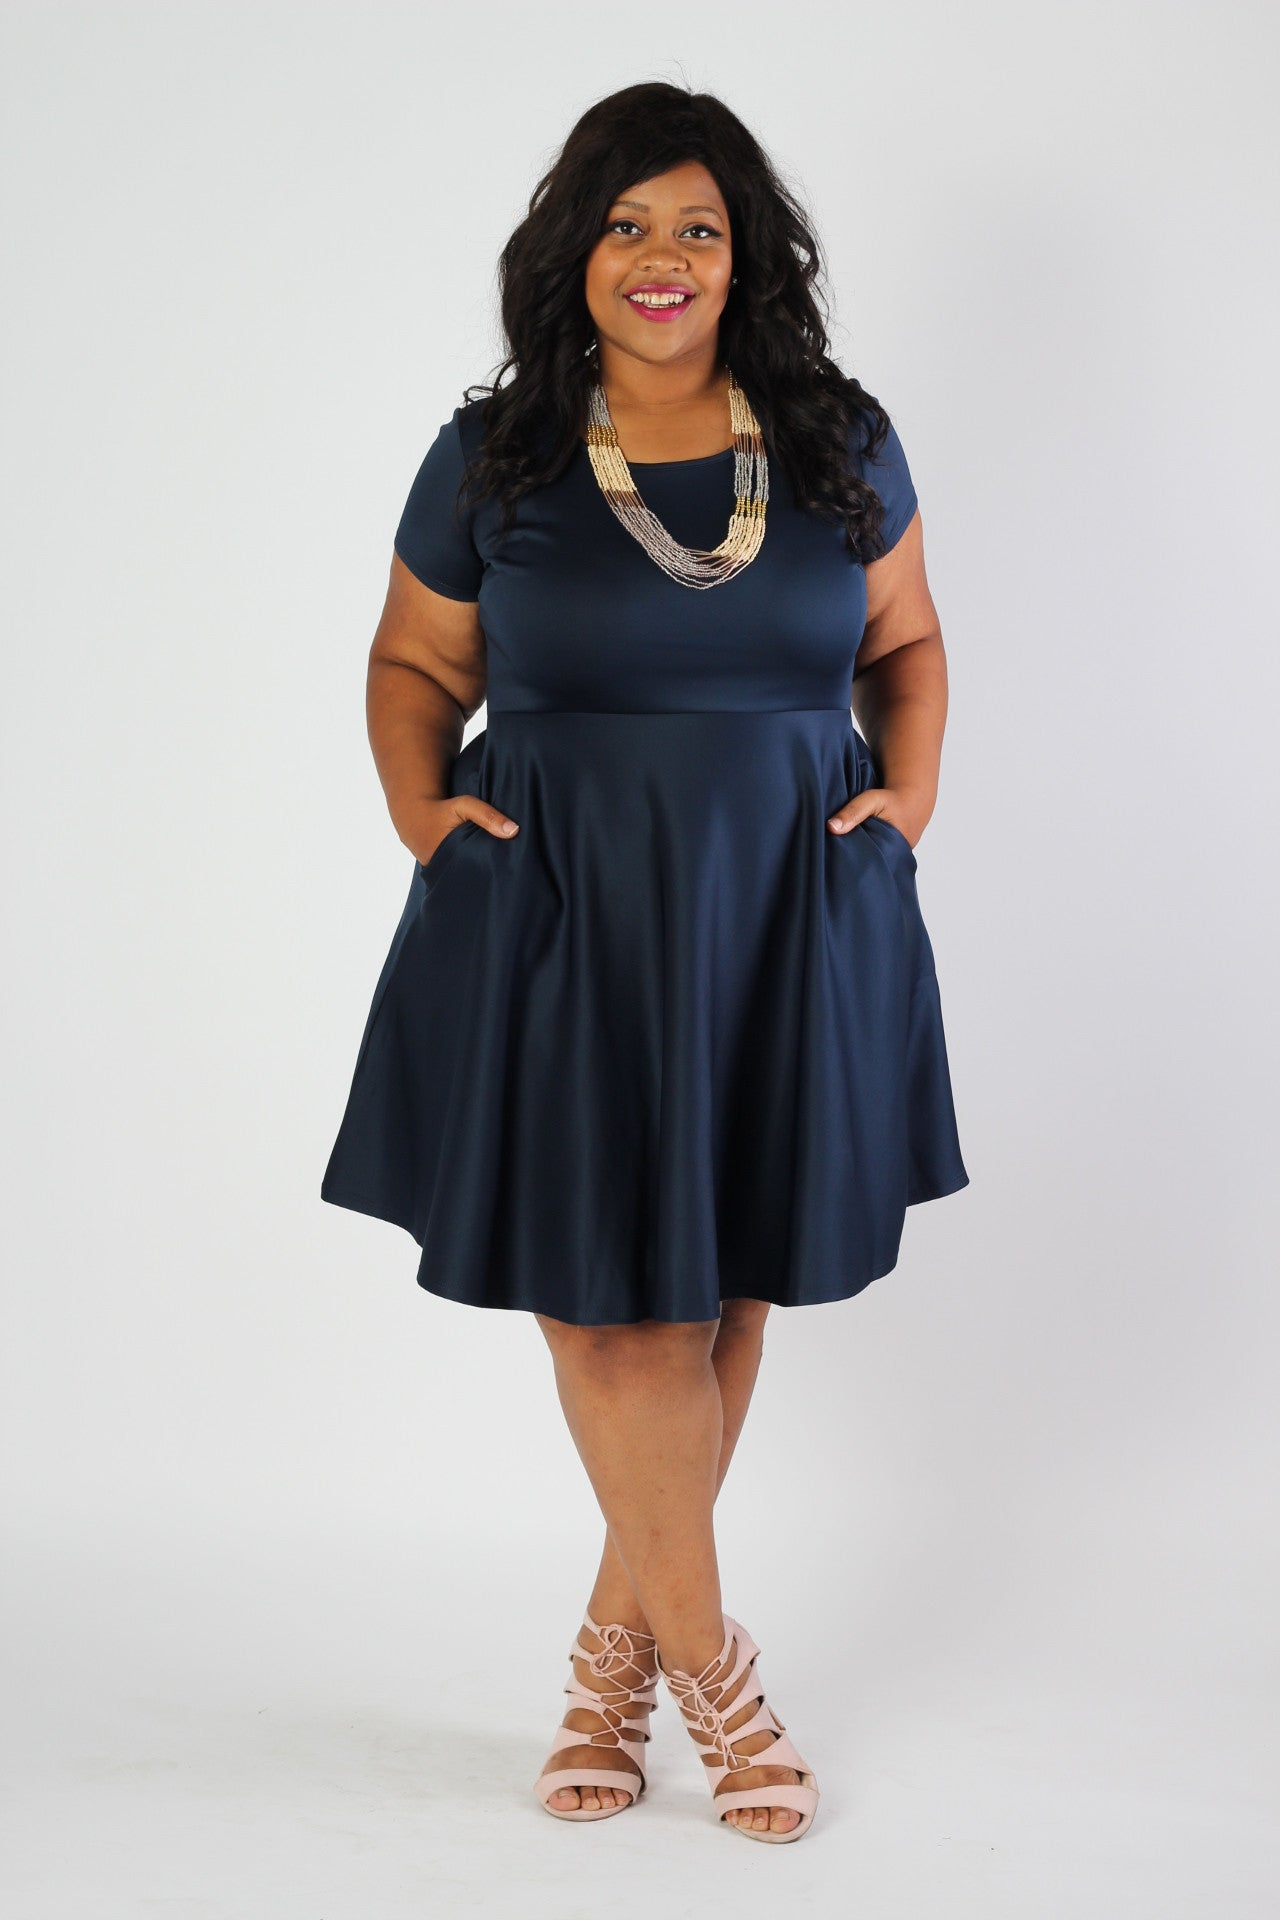 Our #1 Skater Dress now in more color and stripe options! This dress is a gorgeous navy blue color. Our signature fit and flare silhouette perfect for any body type. Made with soft and forgiving scuba fabric, you will be comfortable and confident all day long in any situation! Plus, this gorgeous dress has pockets now! 96% Rayon, 4% Spandex Hand wash with cold water Do not bleach Hang or line dry Size Note: Be sure to purchase the size that would fit your top (don't worry about the bottom size). The fabric is nice and stretchy and true to size. Front length Back length Arm hole Skirt length Size:14/16 39